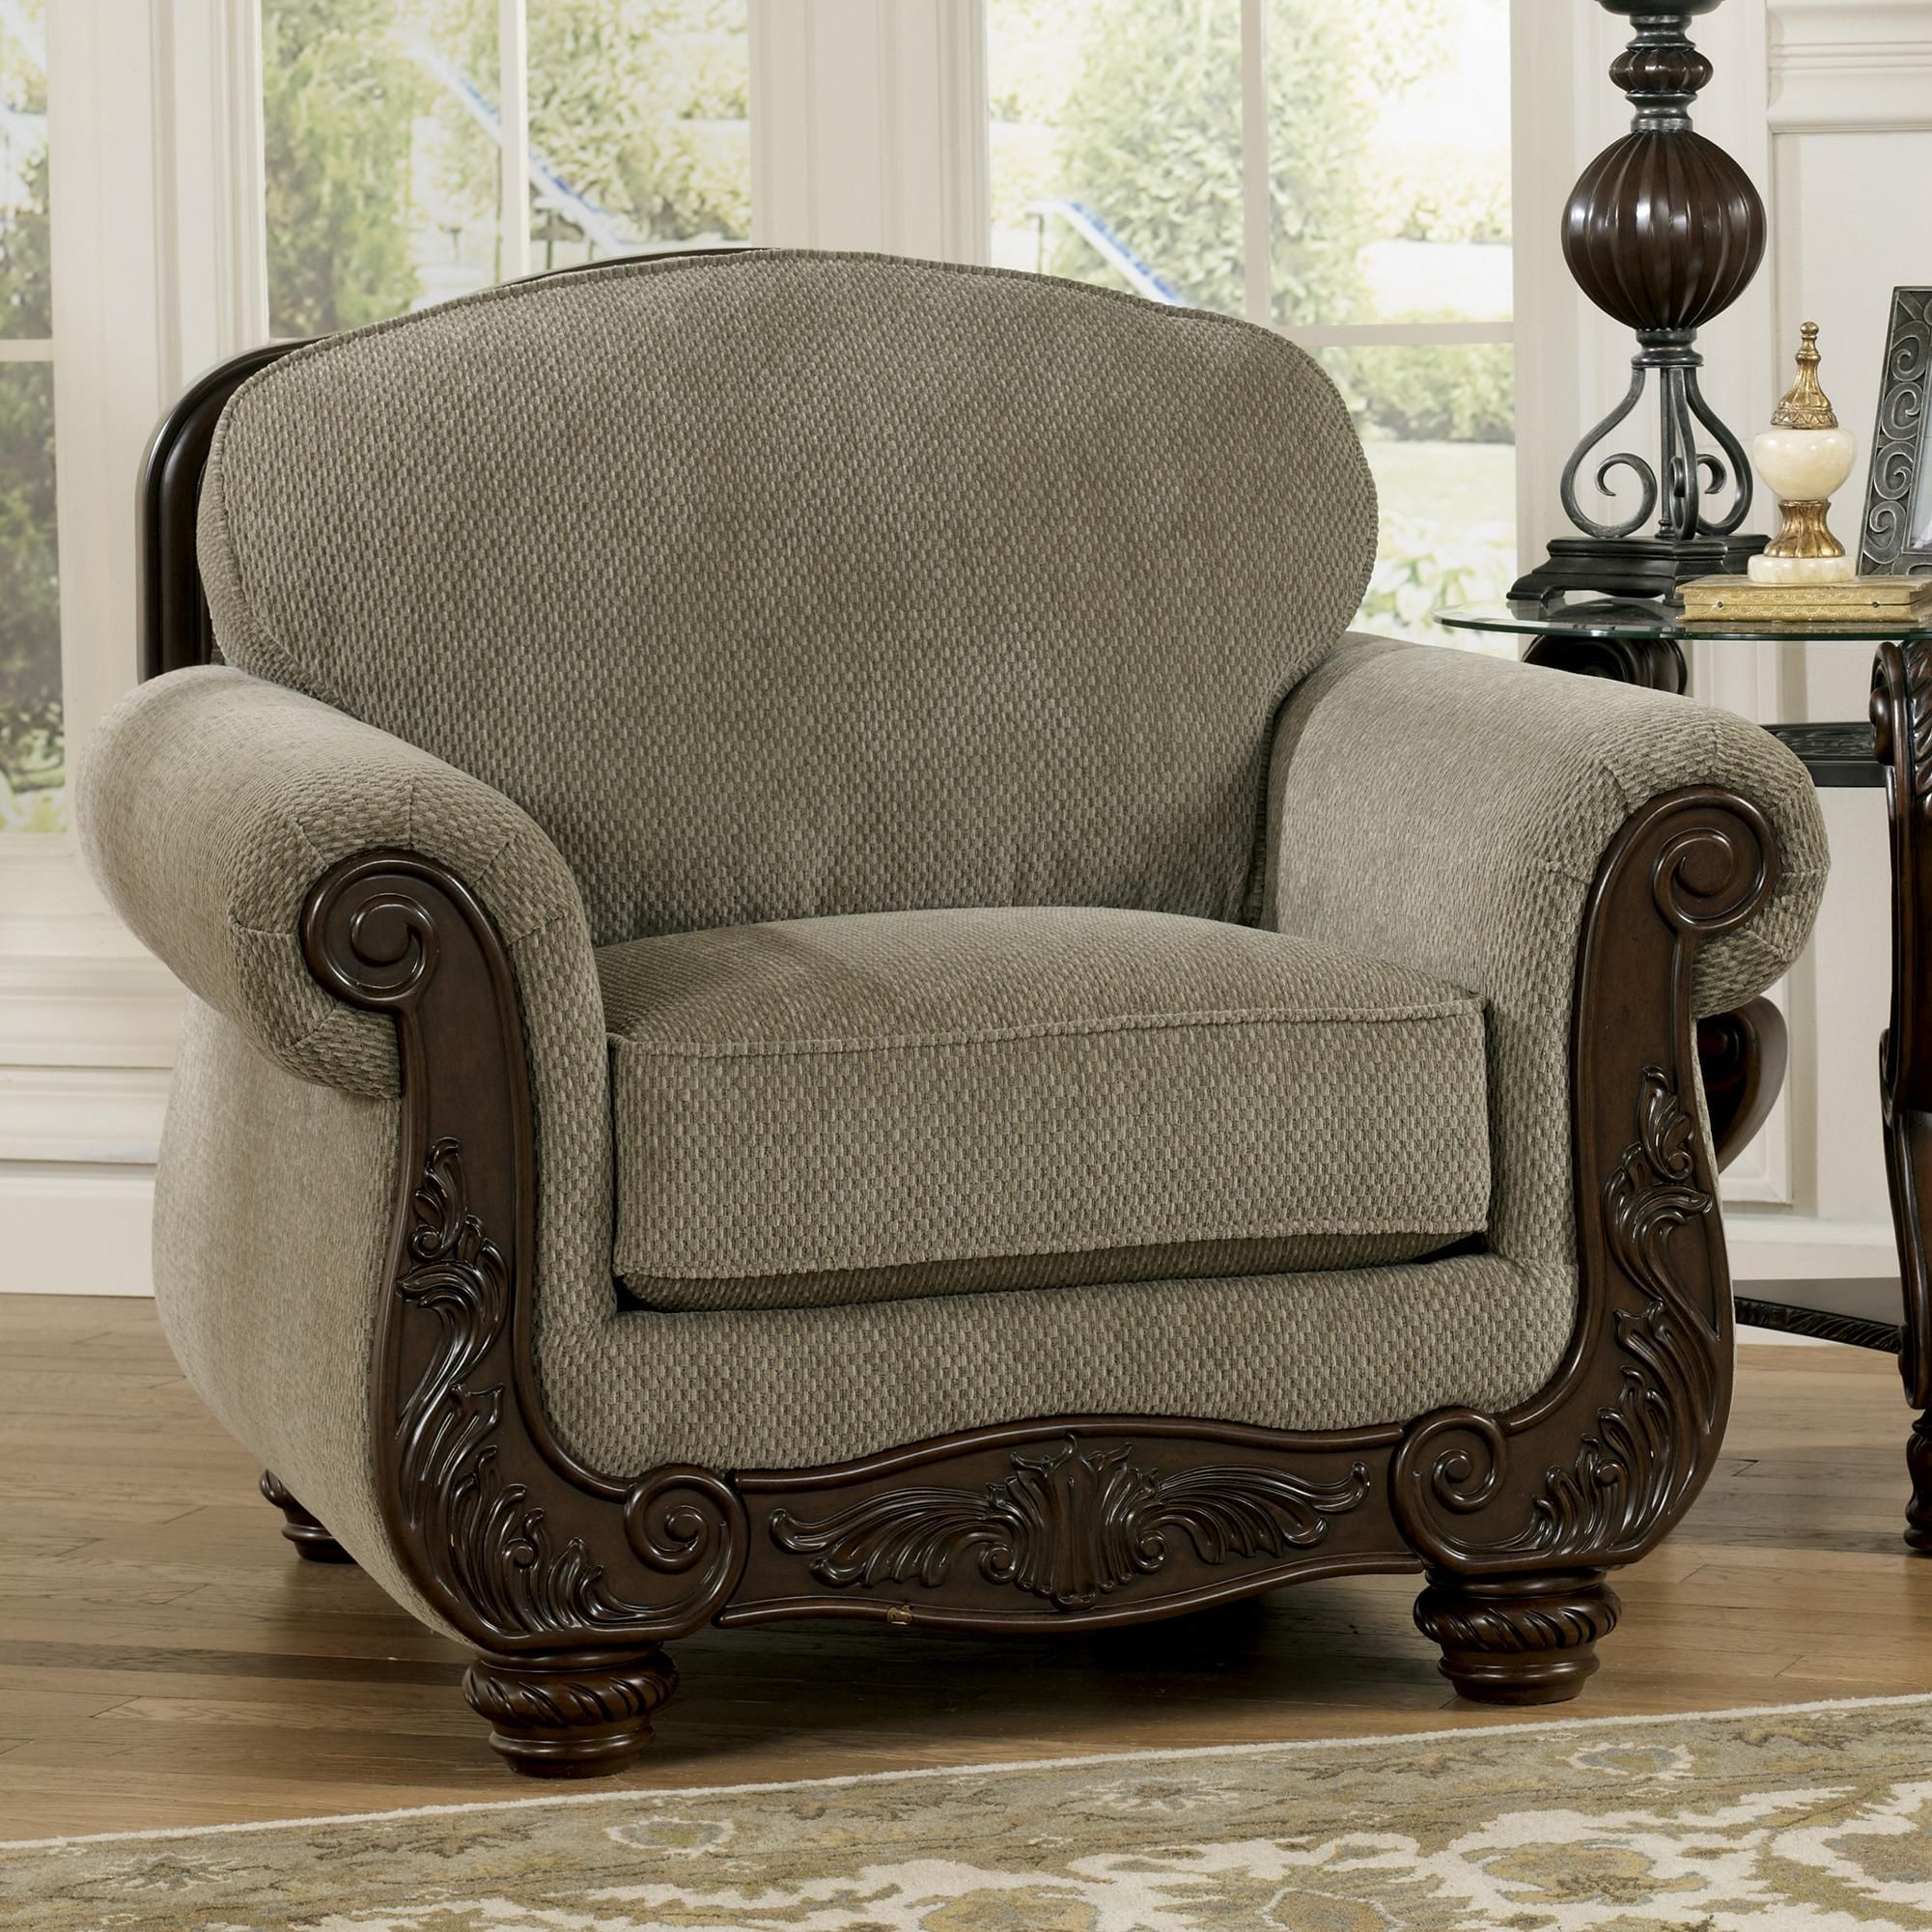 Ashley Furniture Danville Va: Meadow Chair By Signature Design By Ashley